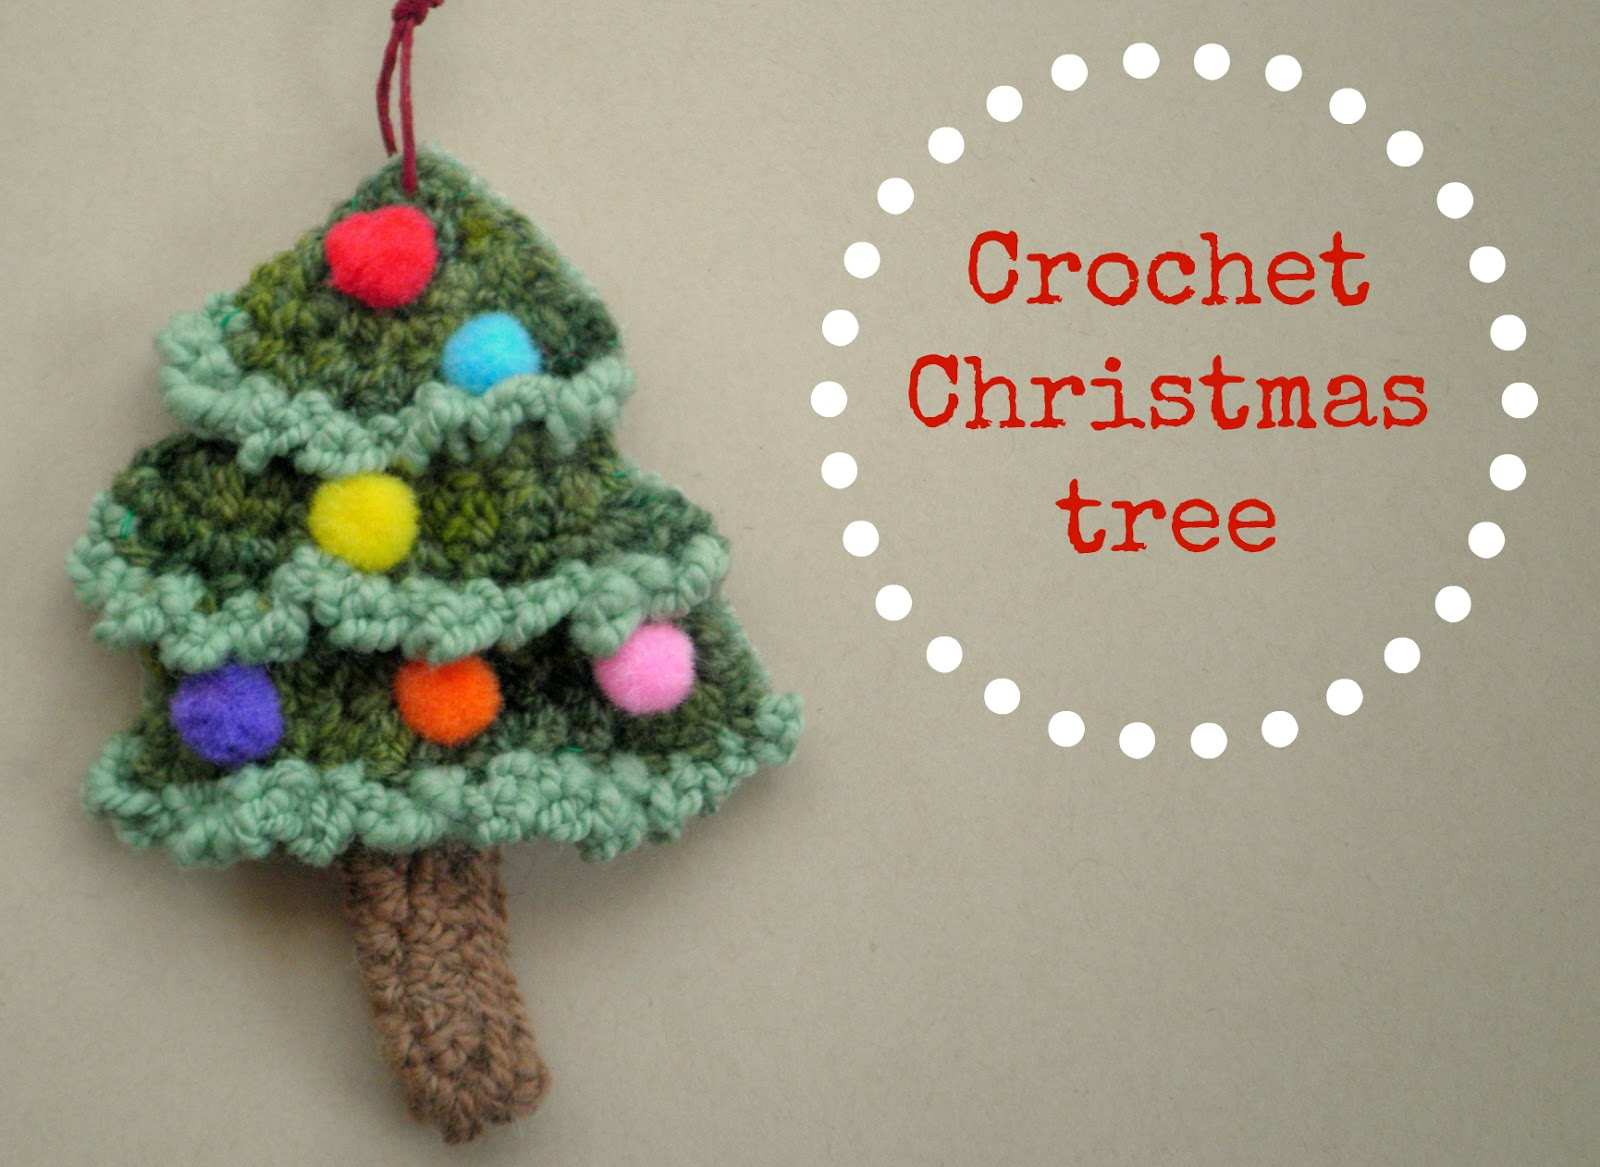 Crochet Pattern For Xmas Tree : nz green buttons: crochet a Christmas tree!